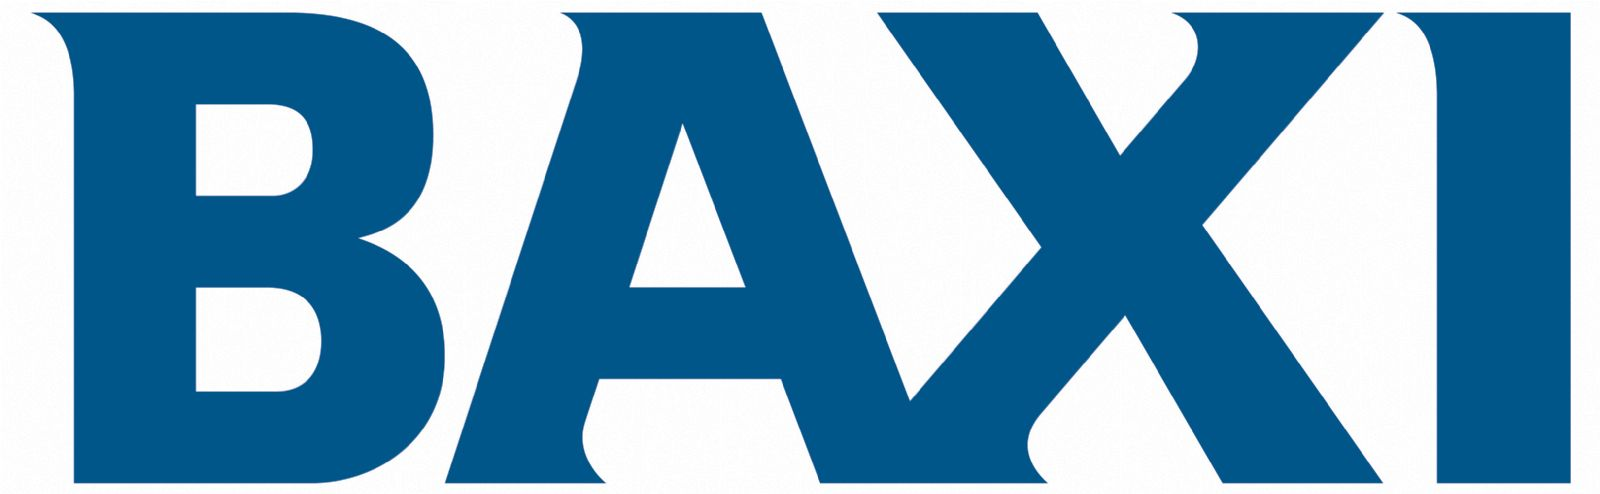 Baxi Logo Wallpaper